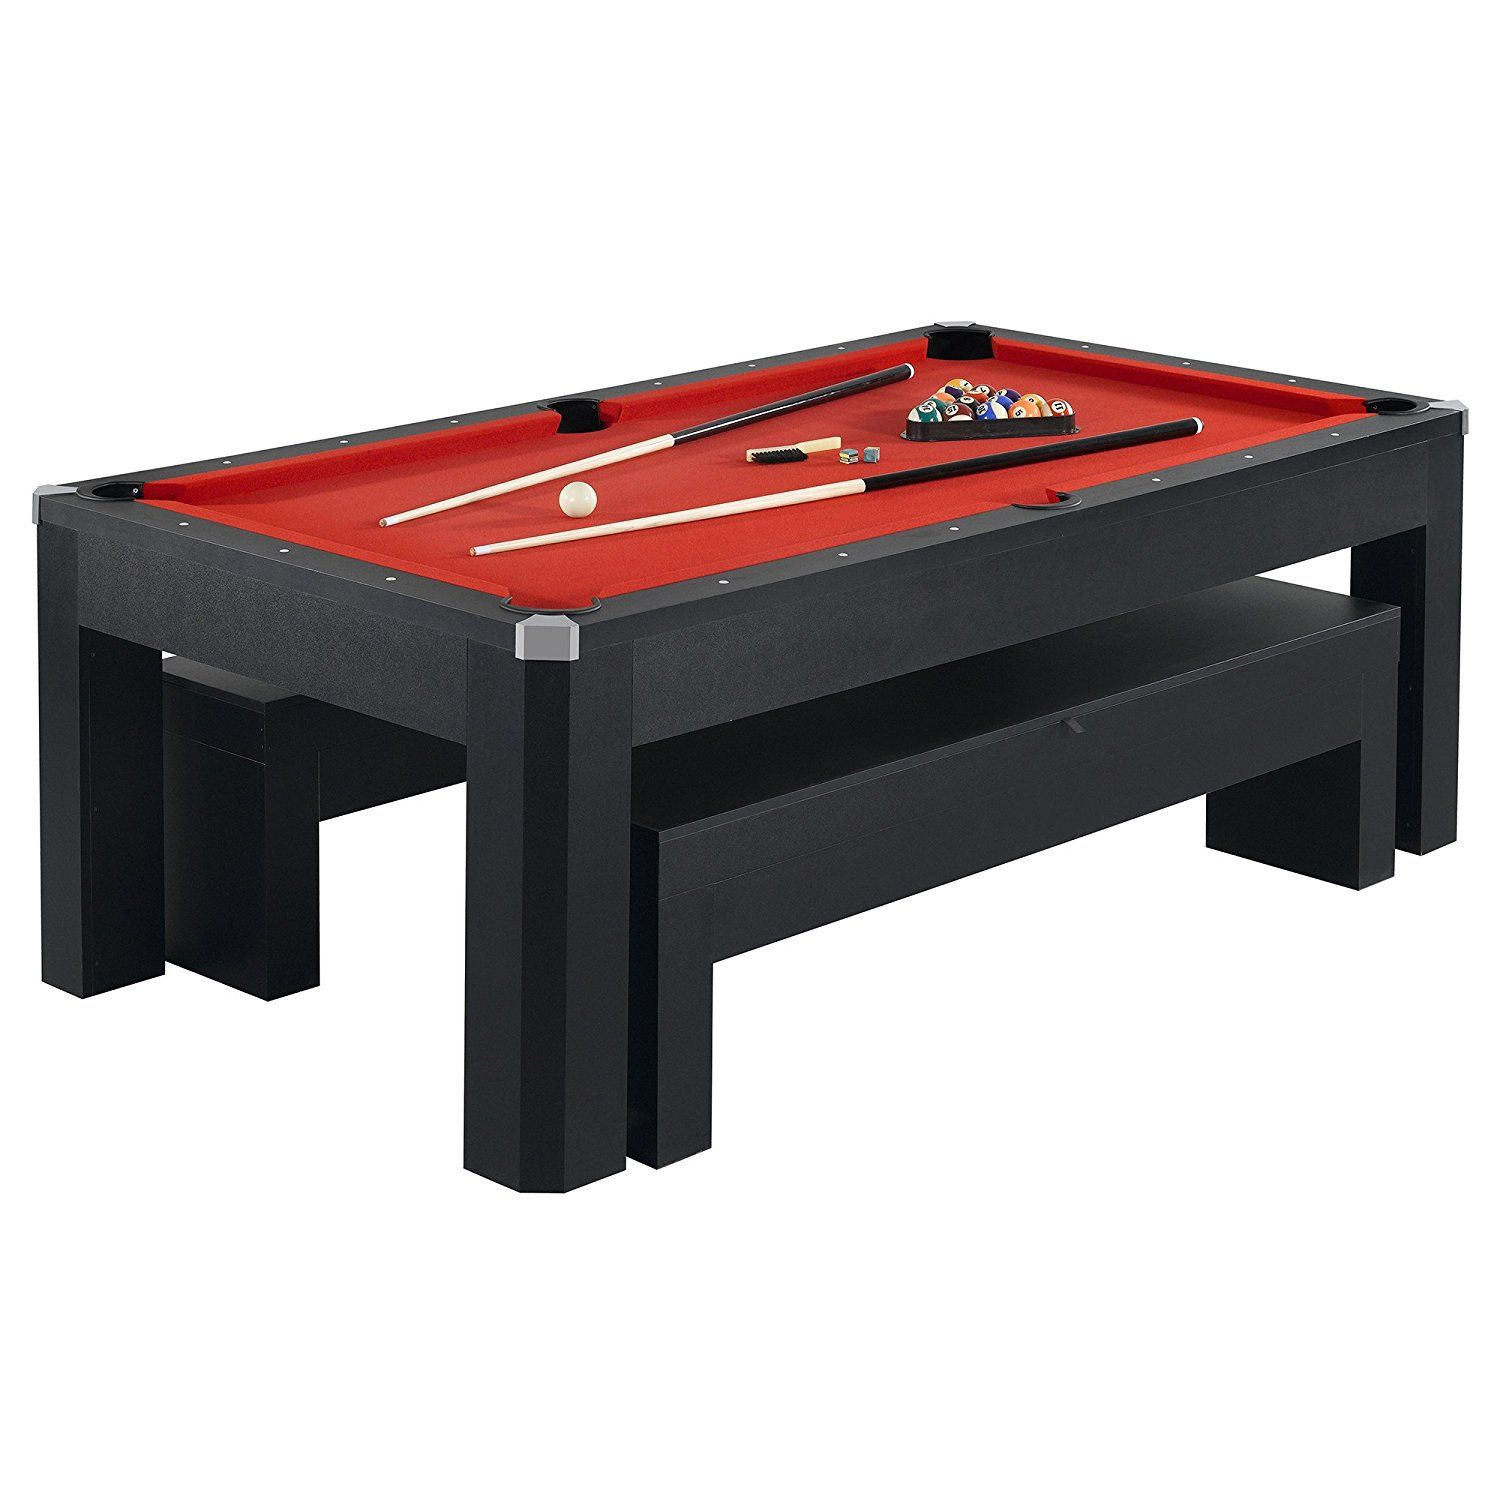 Amazoncom Hathaway Park Avenue Pool Table Tennis - Full size pool table ping pong combo